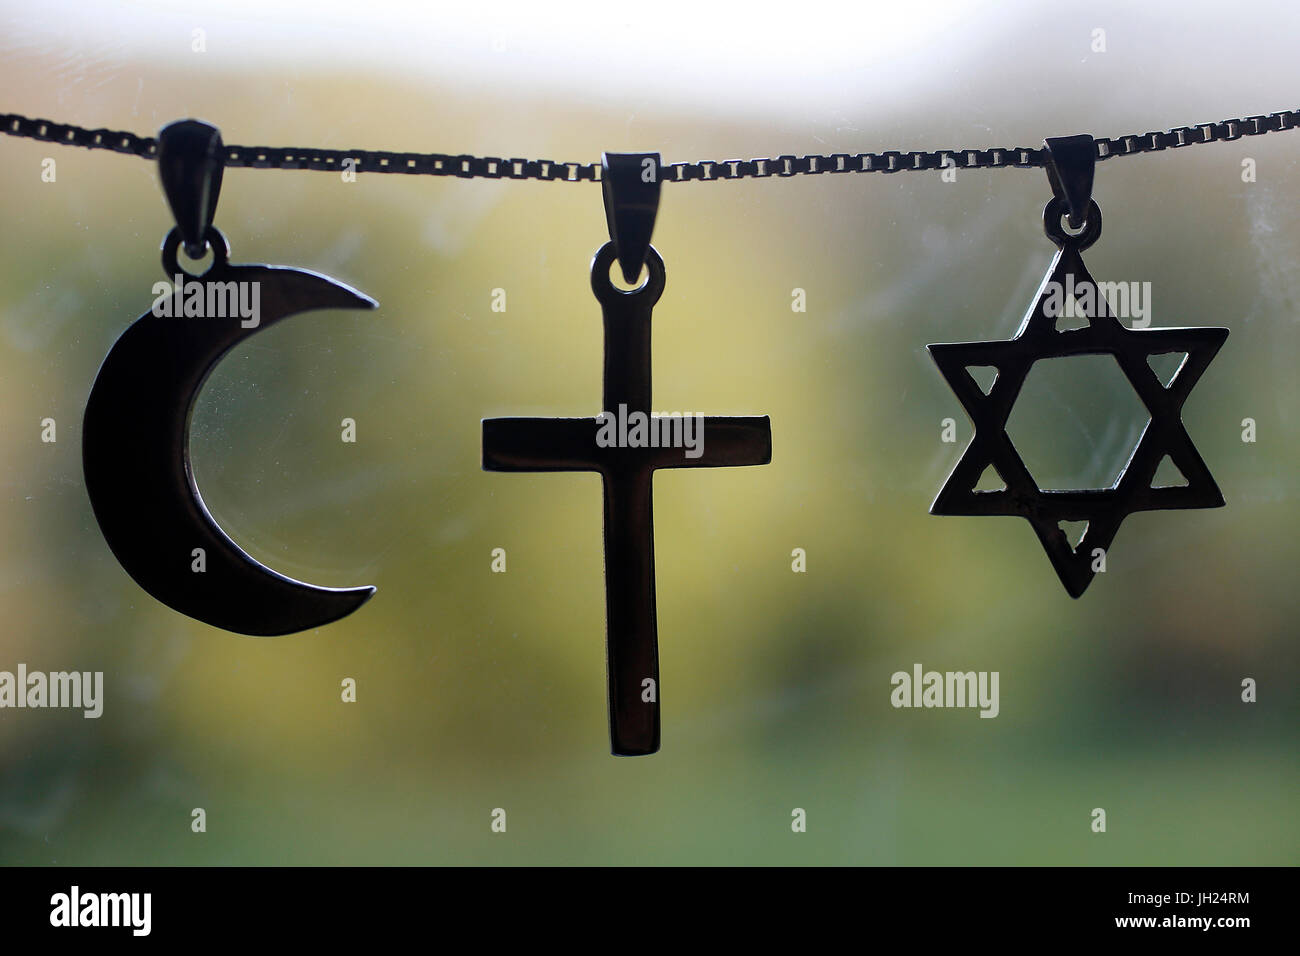 Symbols of islam, christianity and judaism. - Stock Image